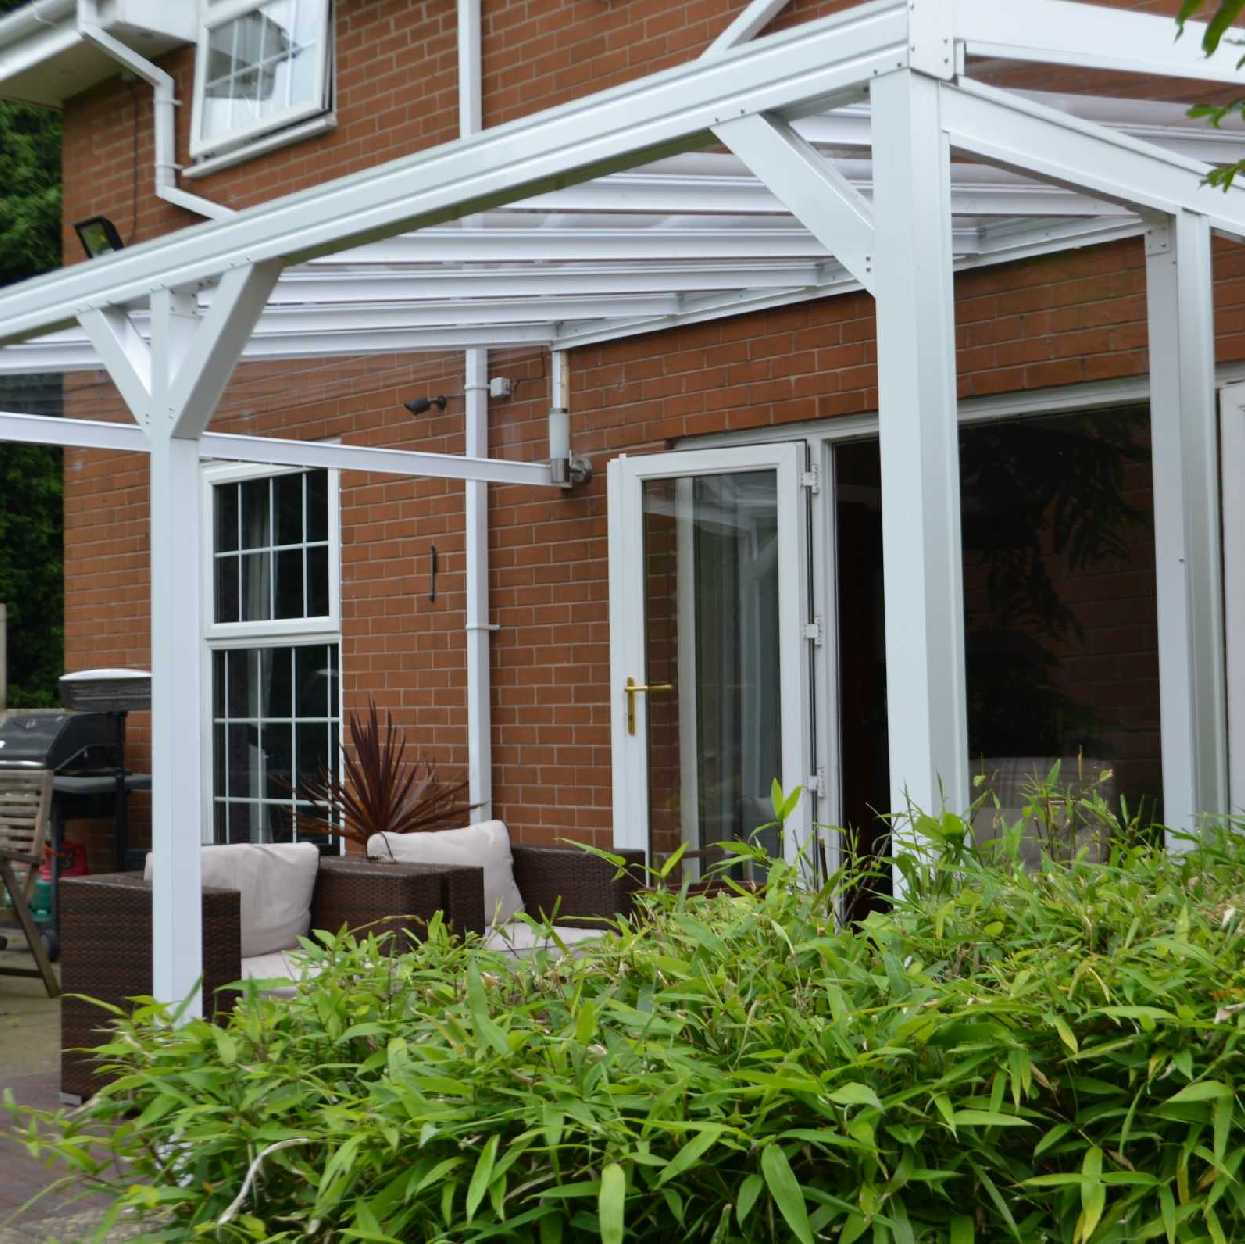 Omega Smart White Lean-To Canopy with 6mm Glass Clear Plate Polycarbonate Glazing - 4.2m (W) x 2.0m (P), (3) Supporting Posts from Omega Build